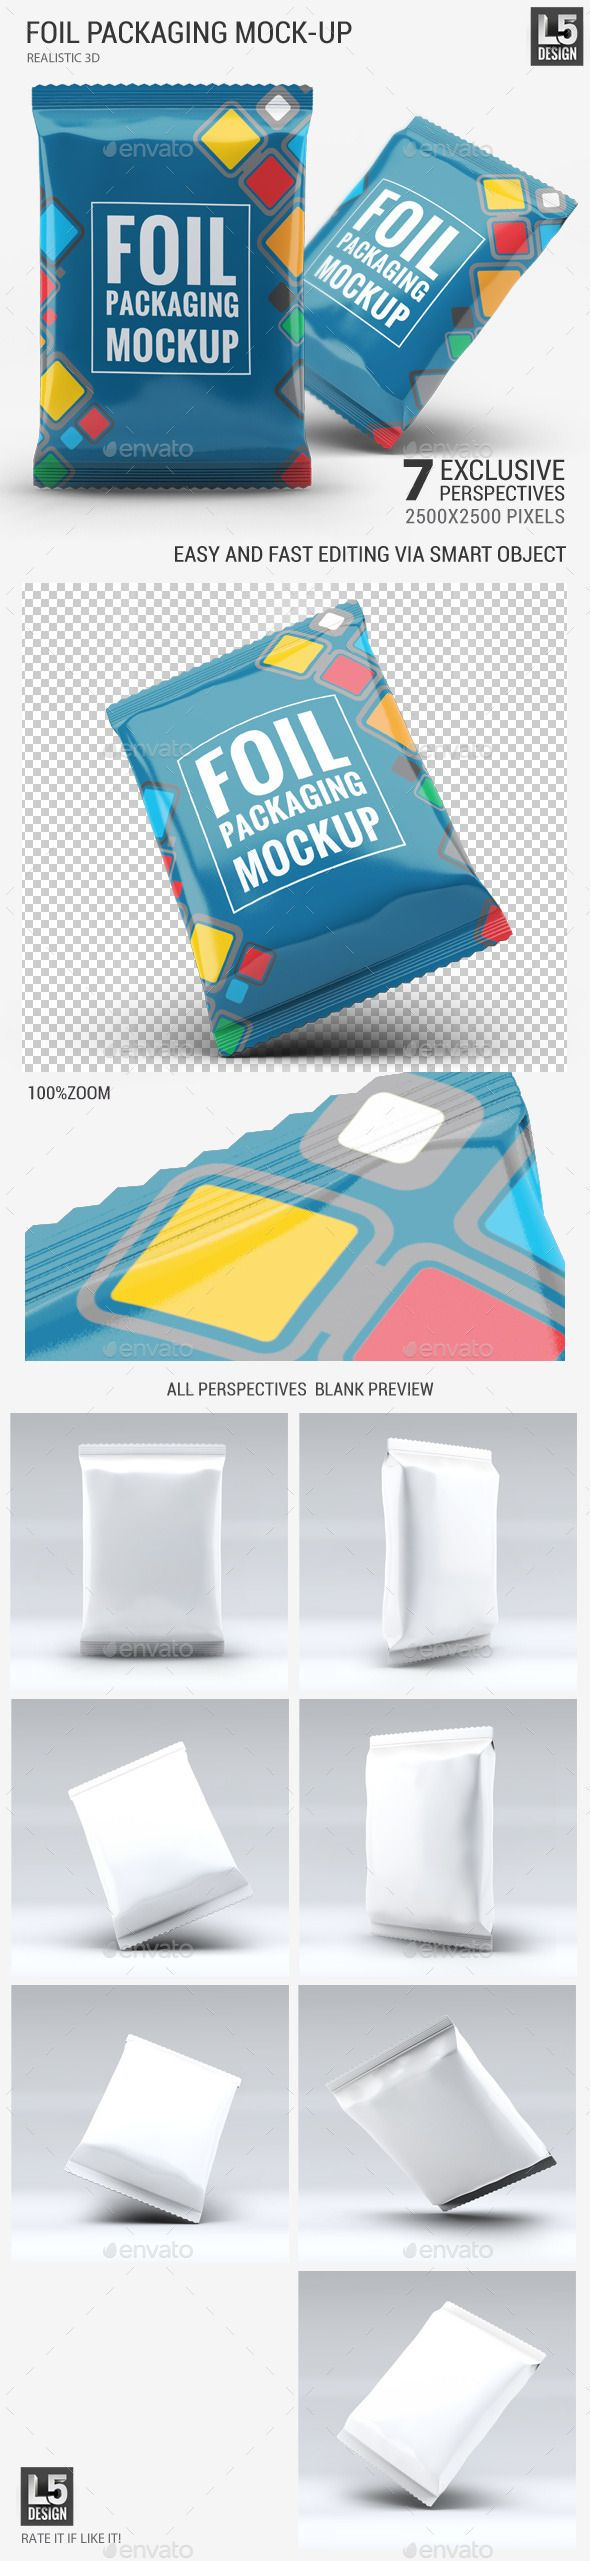 Foil Packaging Mock-Up #design Download: http://graphicriver.net/item/foil-packaging-mockup/11625656?ref=ksioks